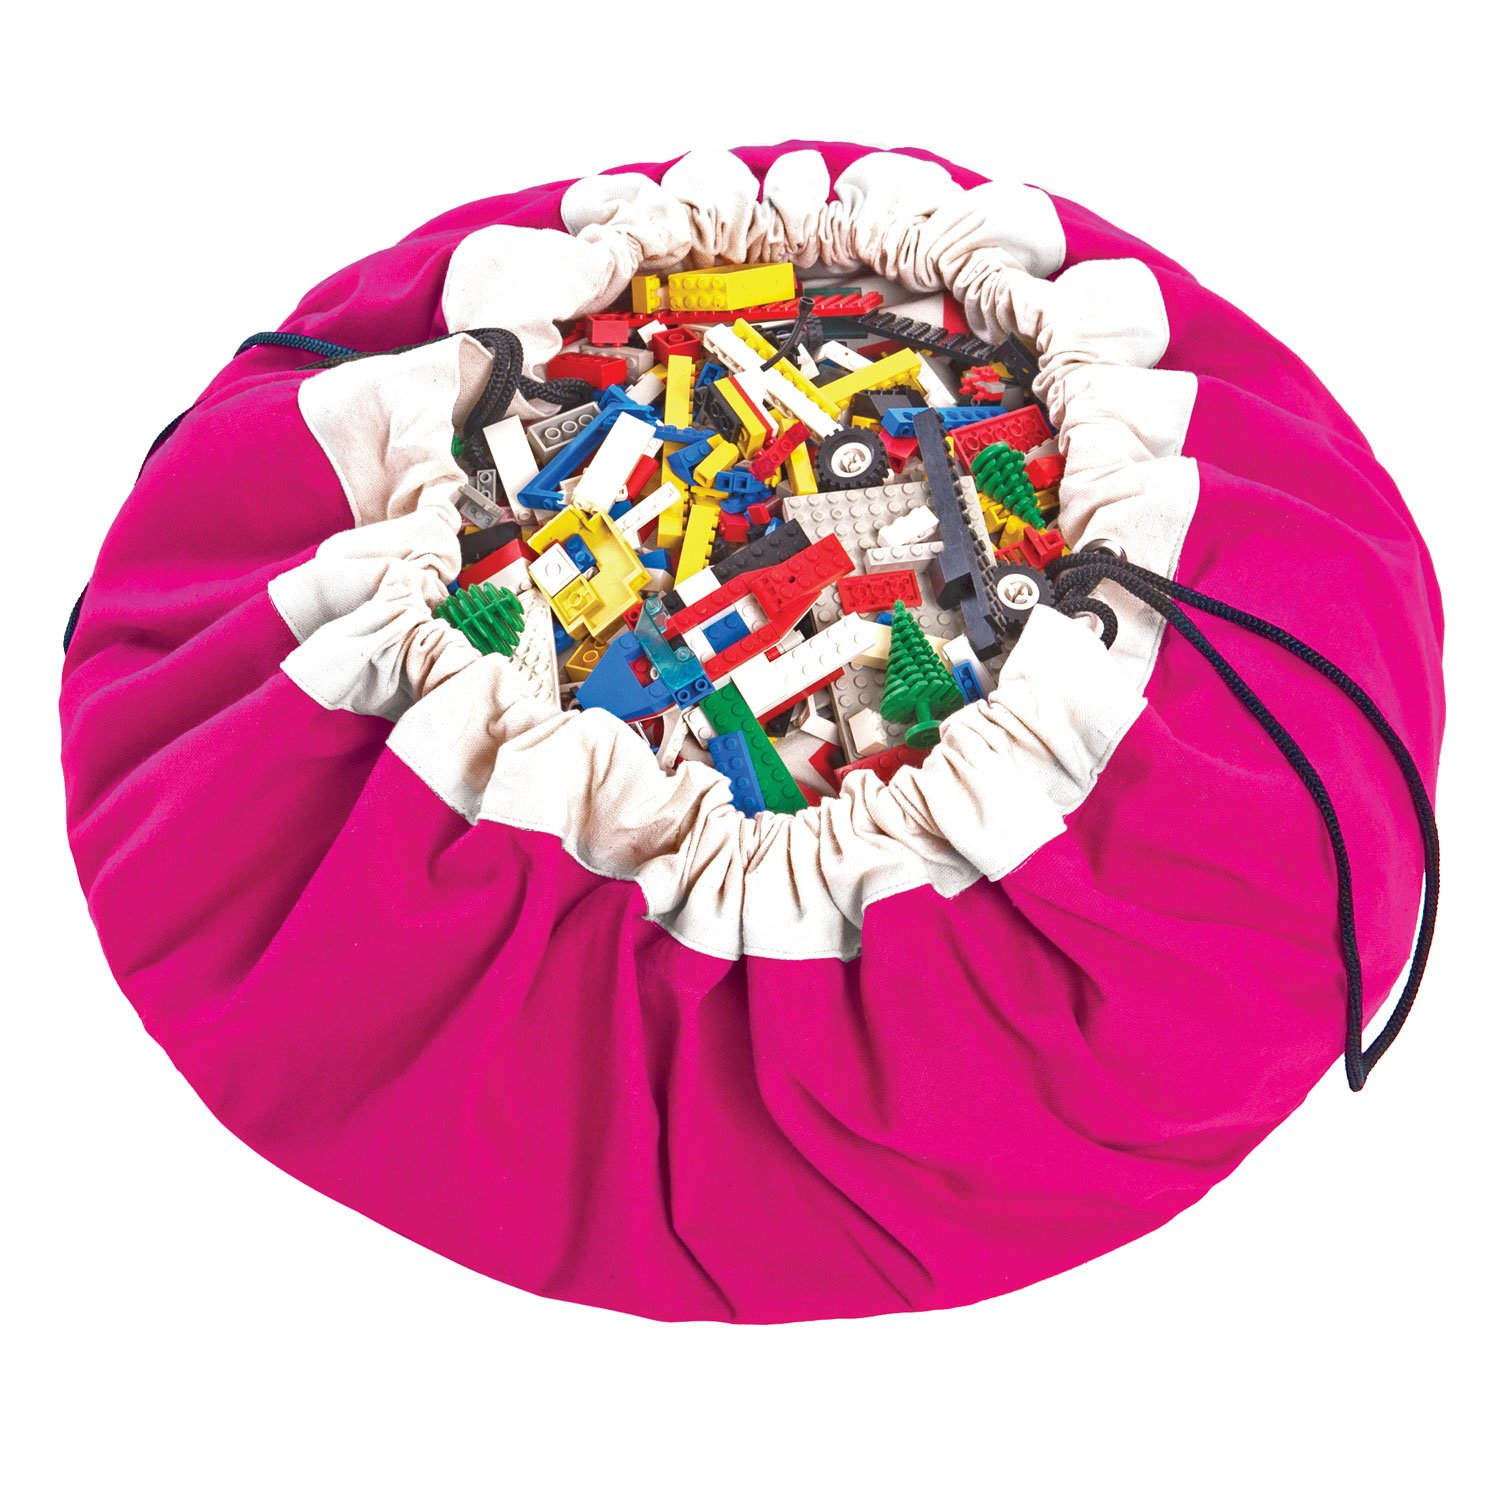 Play&Go Large Children Drawstring Play Mat and Toy Organizer Storage 55 Bag - Portable Container for Storing Kids Toys - Fuchsia